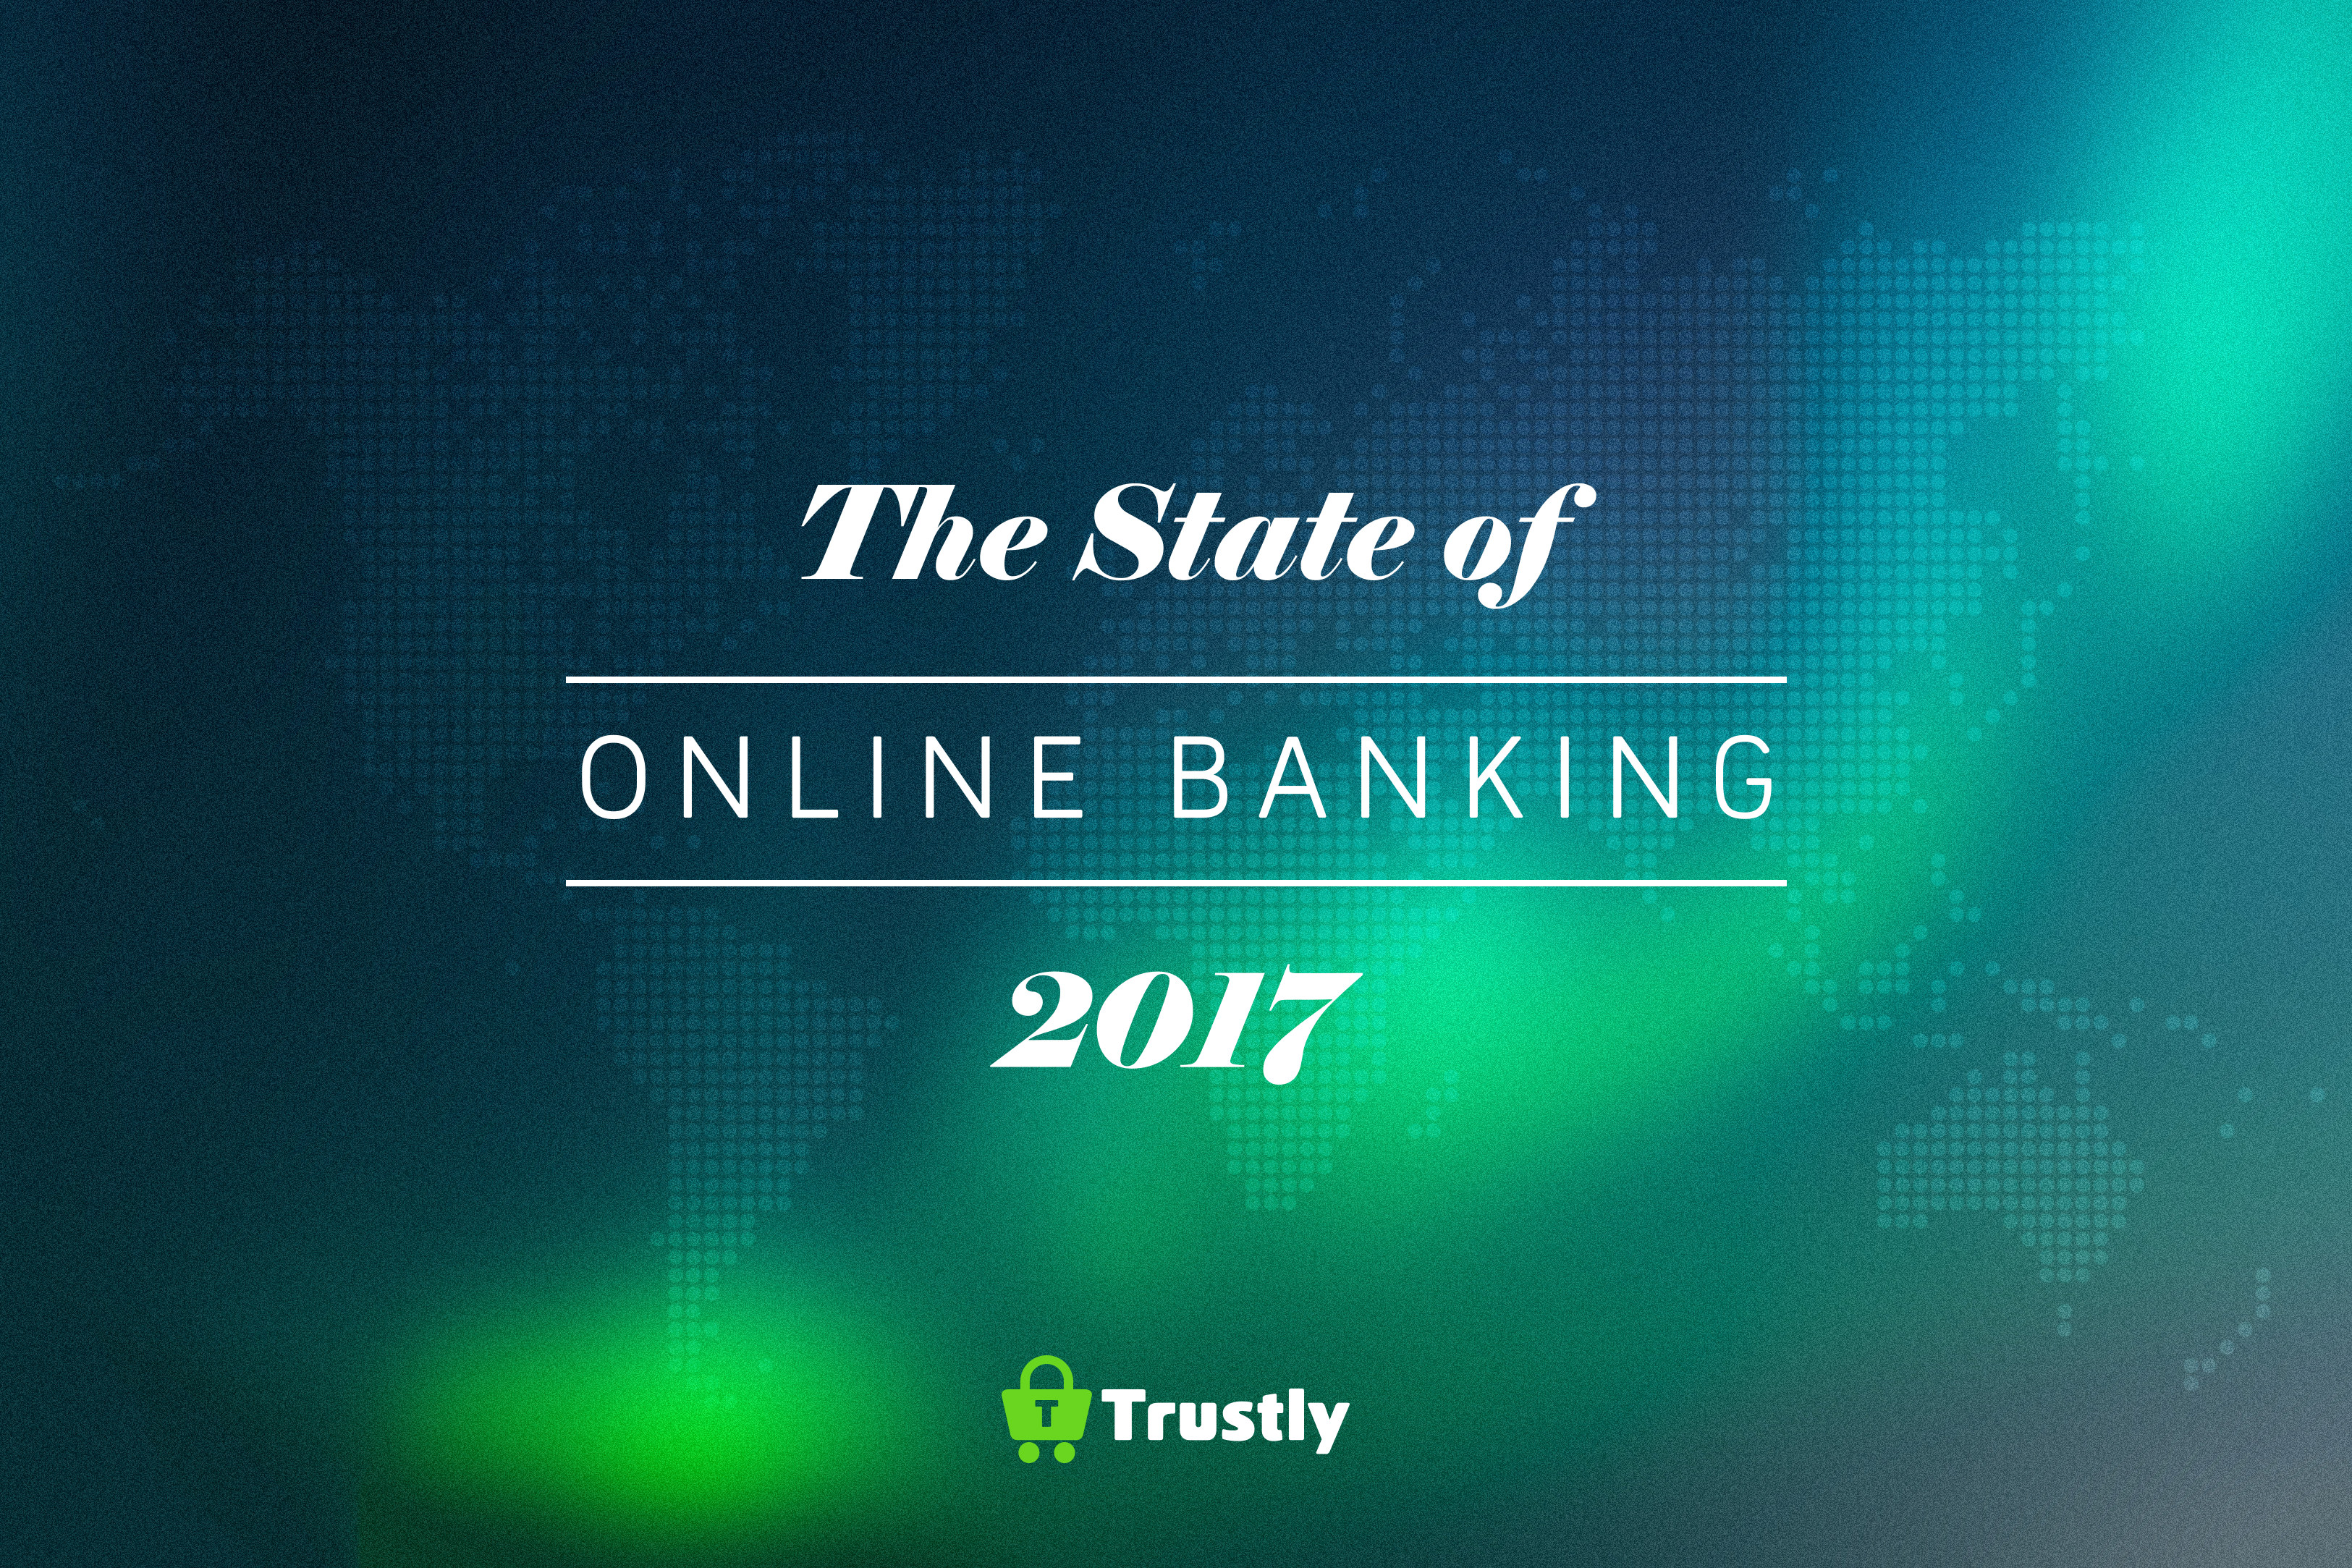 Report: UK bank customers access their accounts online in record numbers - high trust in their main bank